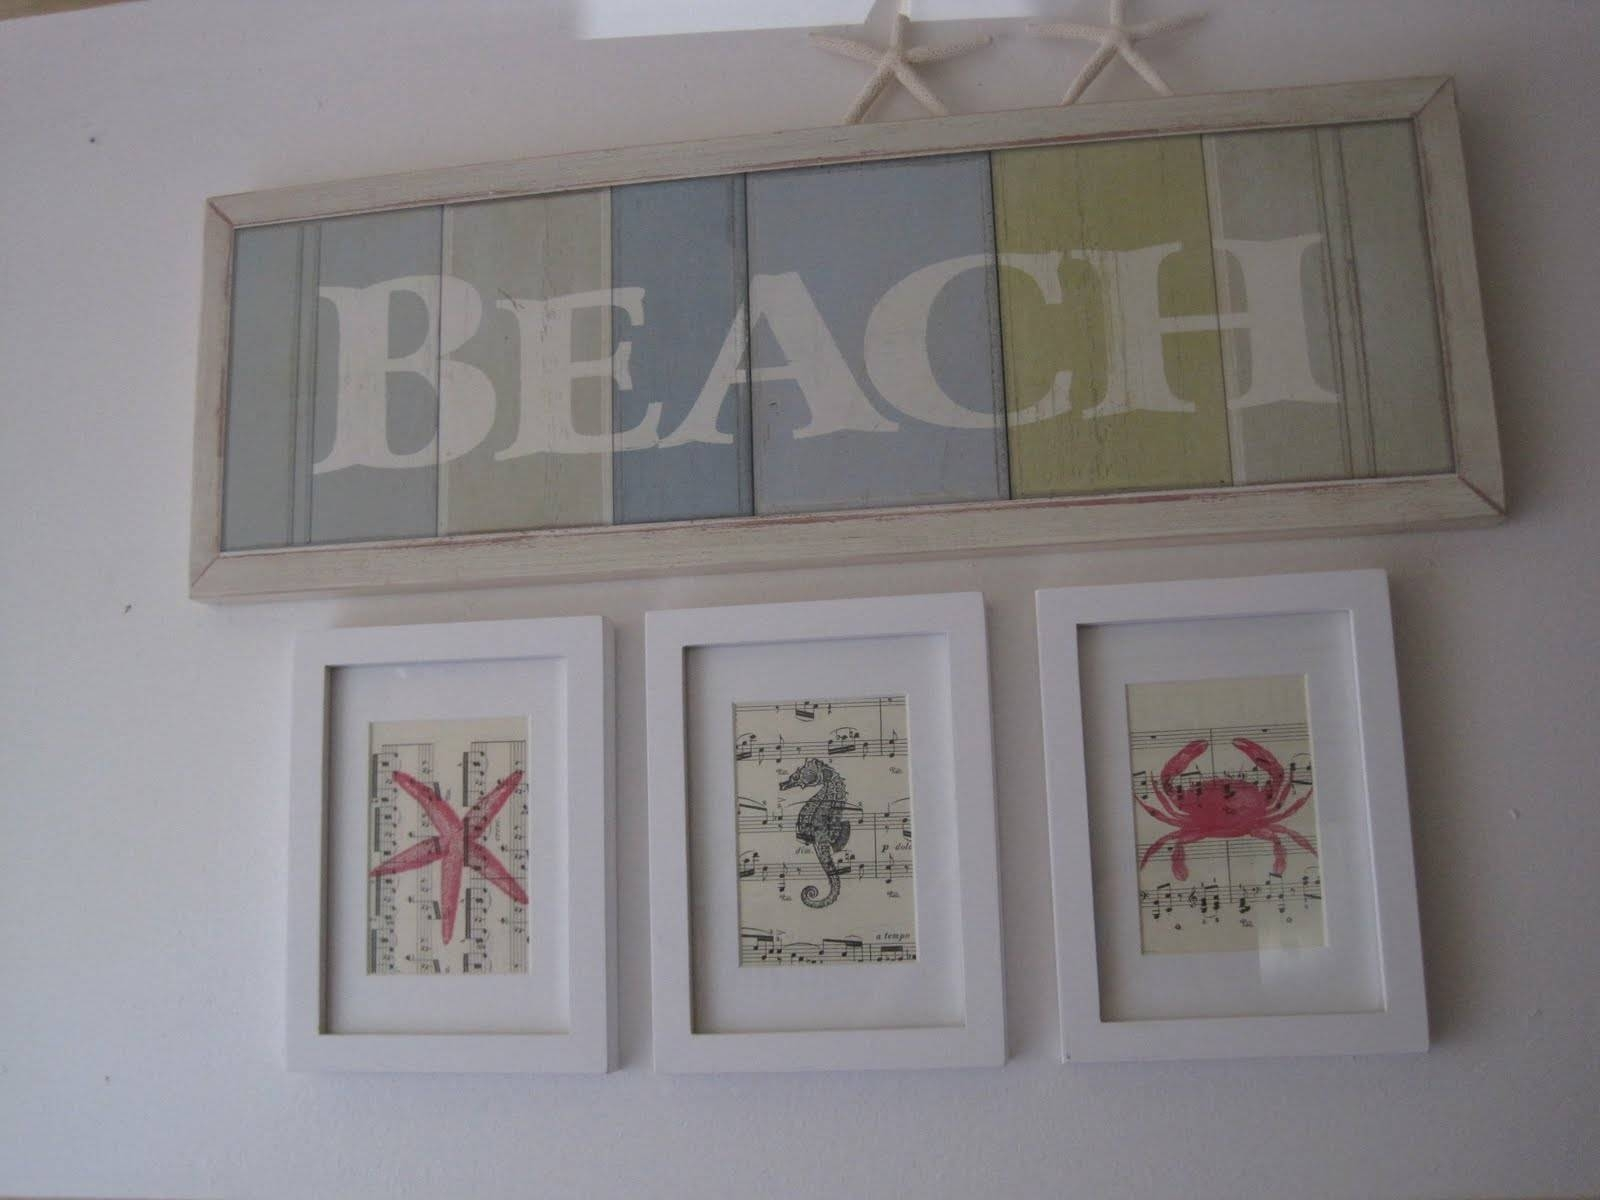 Beach Creatures Wall Art – Okio B Designs In Most Up To Date Beach Theme Wall Art (View 6 of 20)